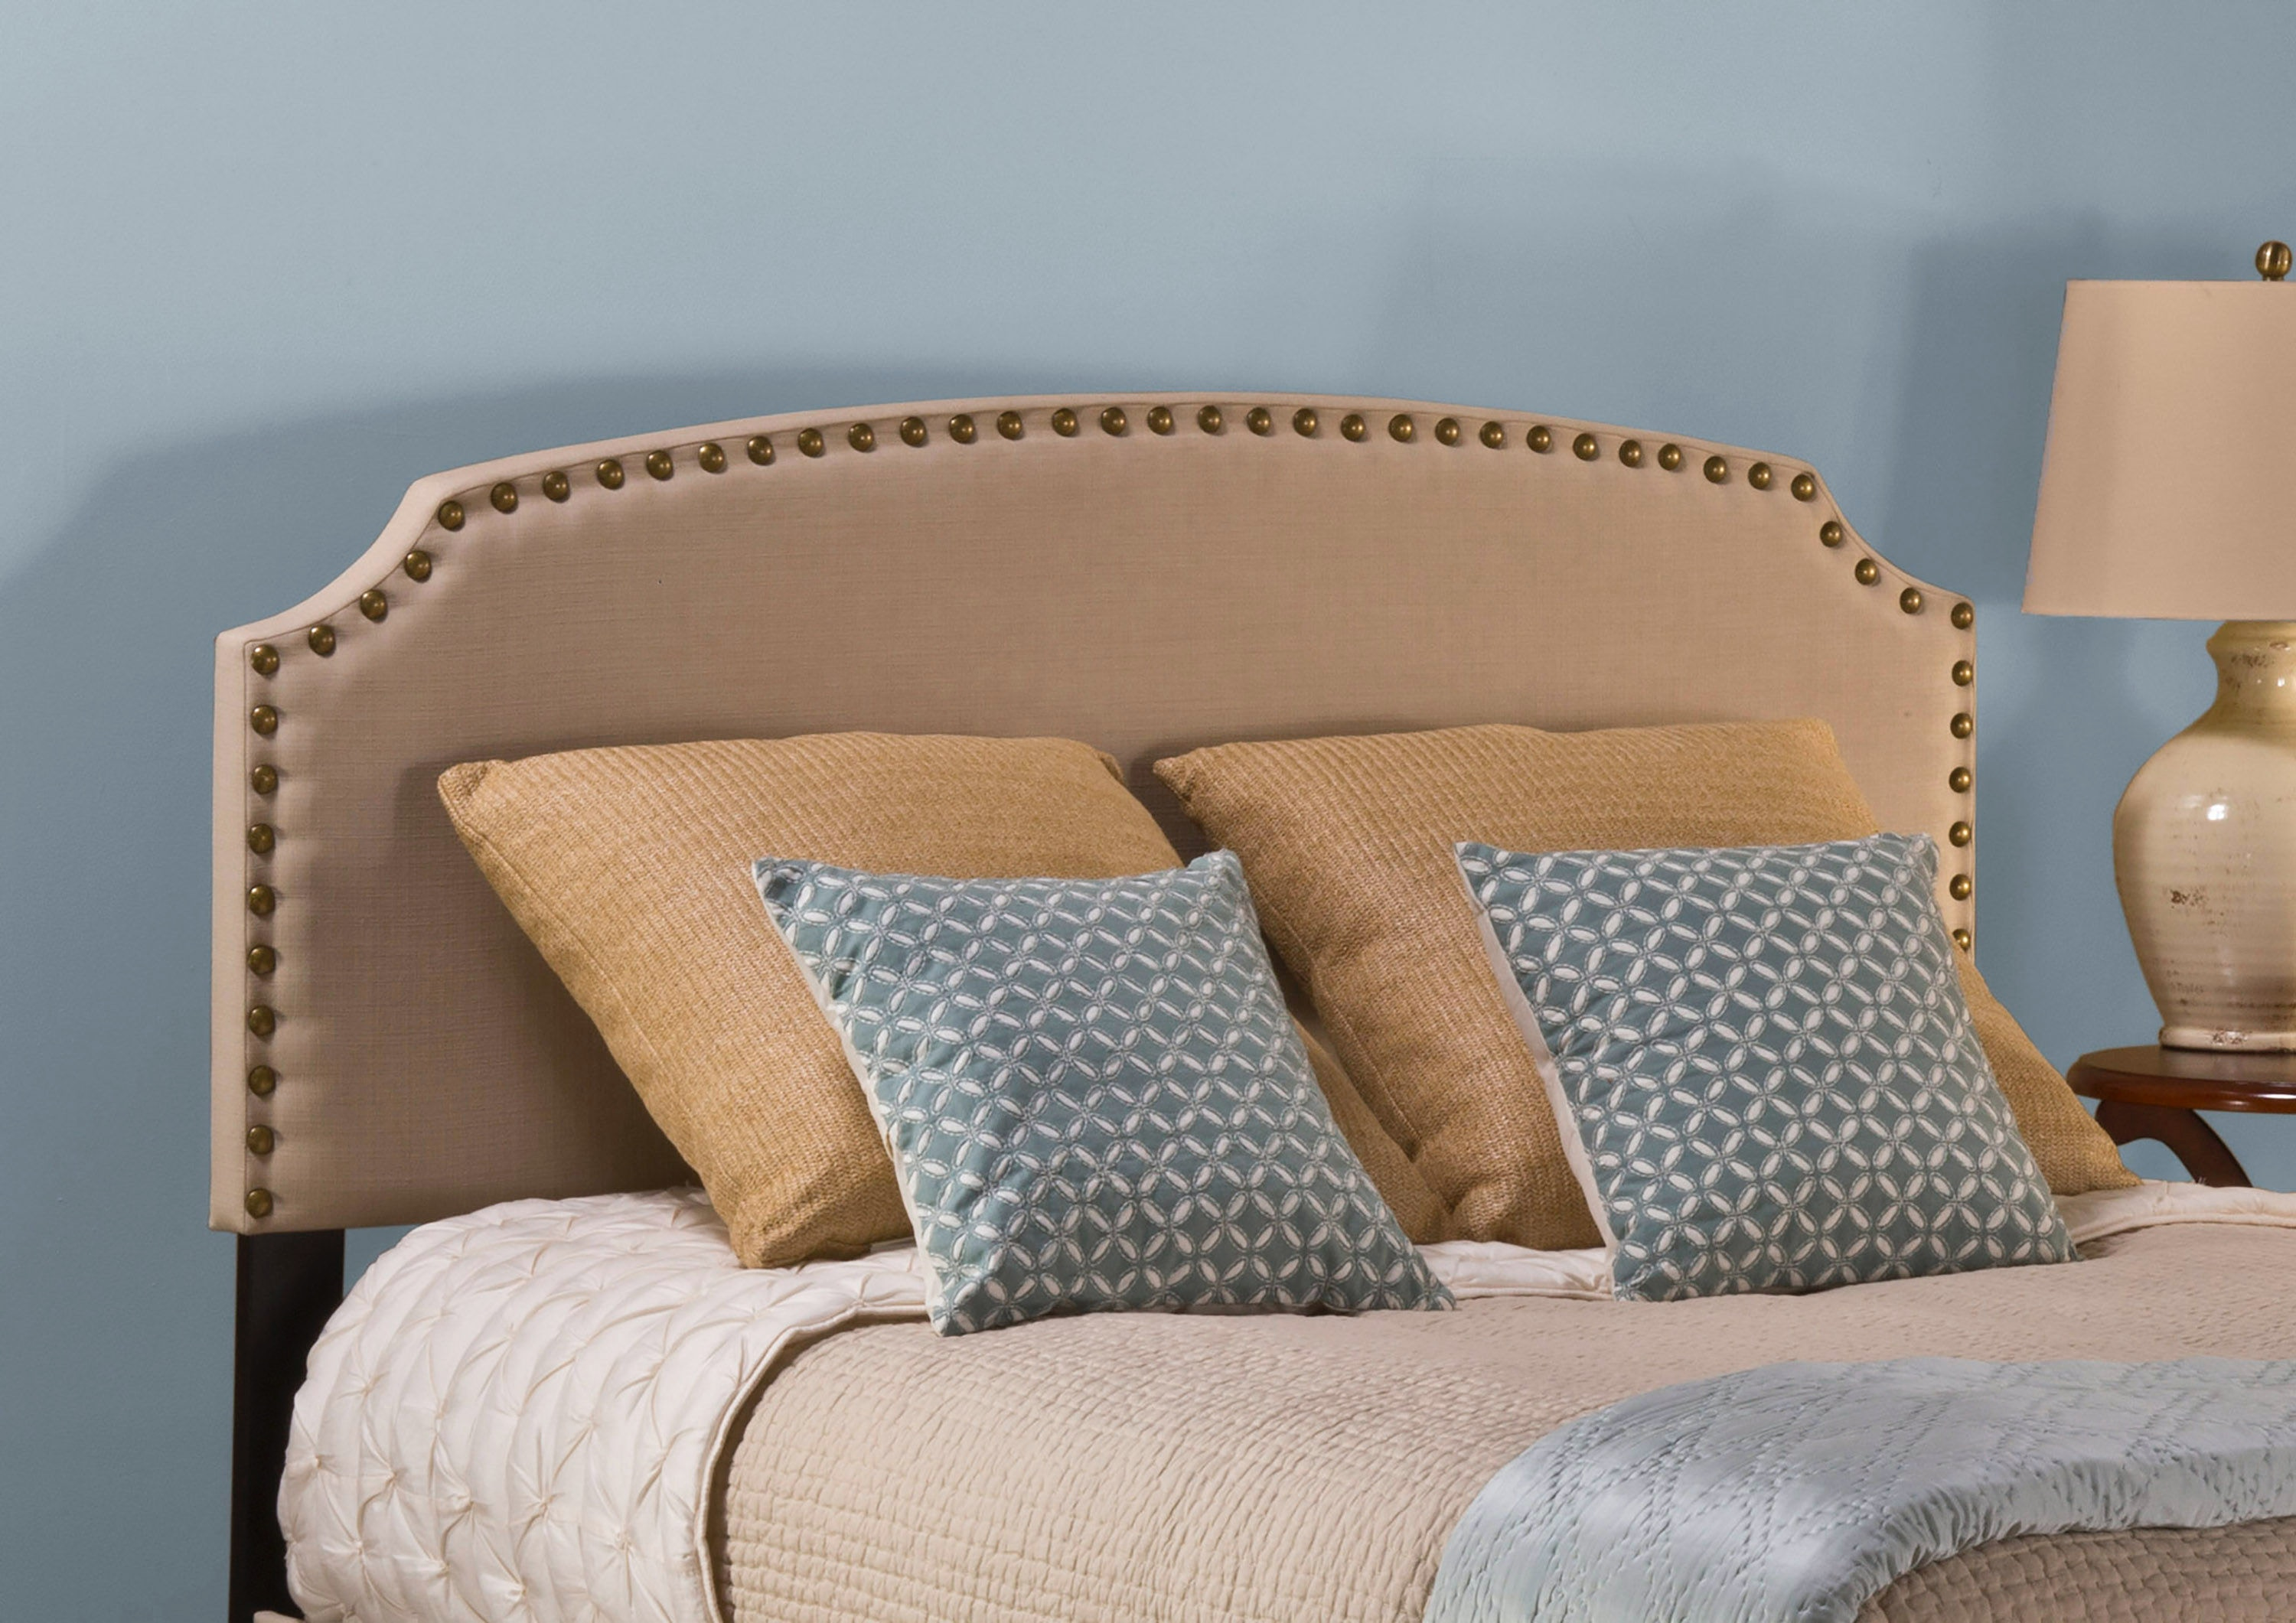 Hillsdale Furniture Youth Lani Upholstered Headboard   Full 1116 472  Available To Order At Flemington Department Store